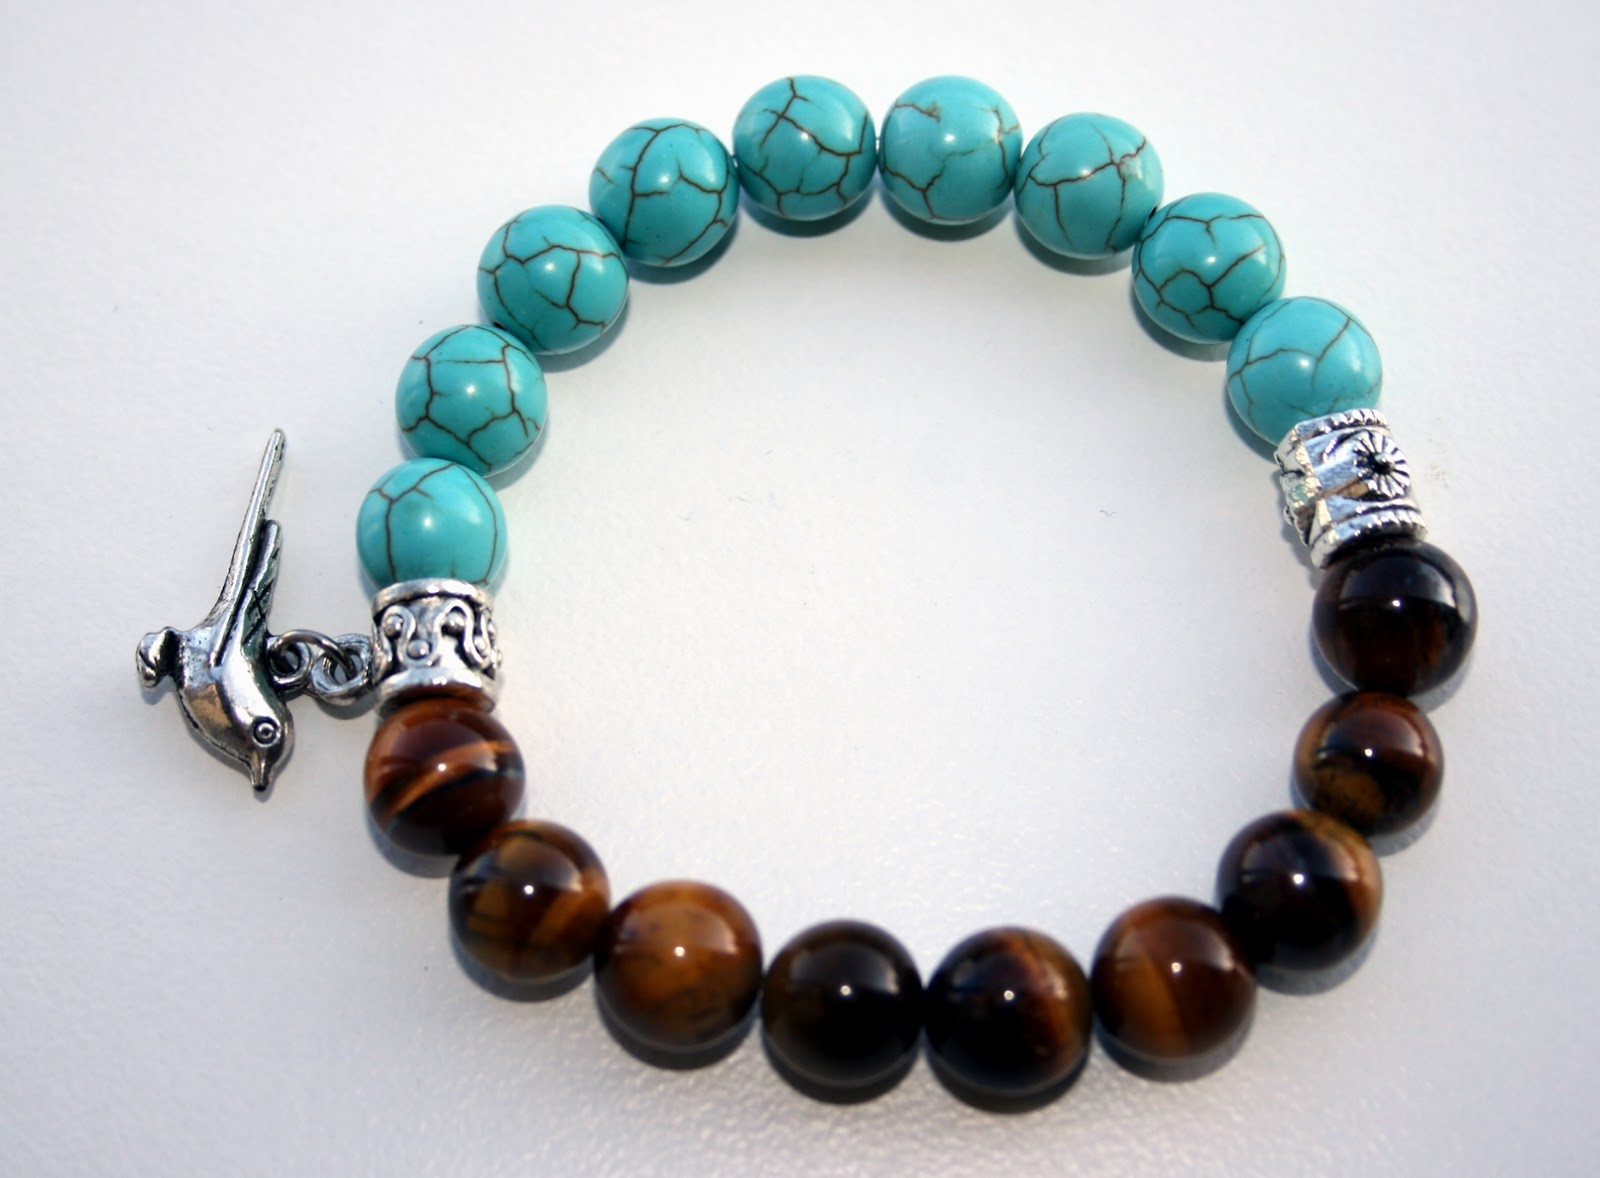 Turquoise and Tiger's Eye Bracelet, jewellery making, jewelry, gemstones